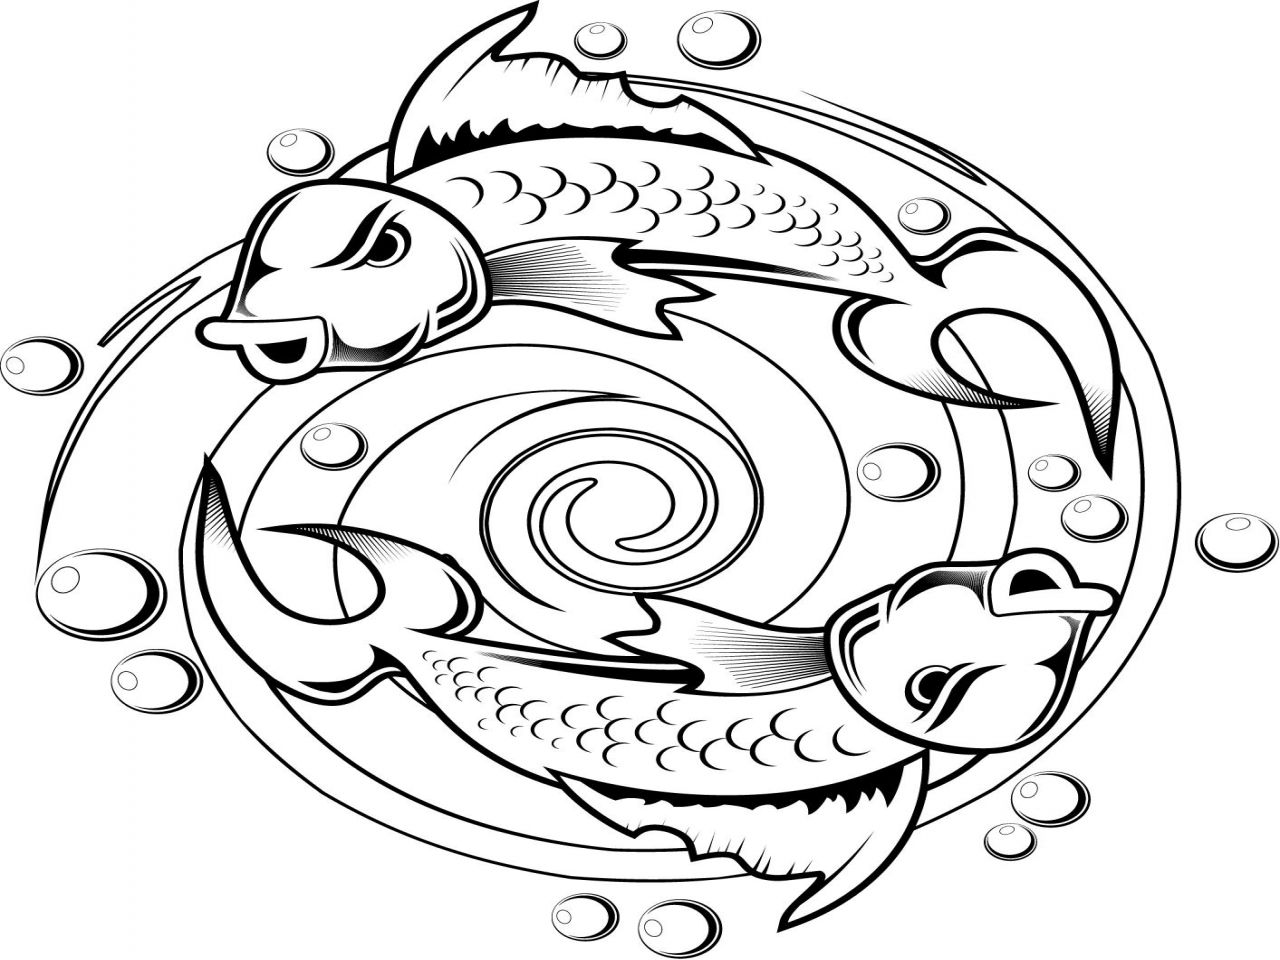 1280x960 Star Tattoo Coloring Pages For Adults